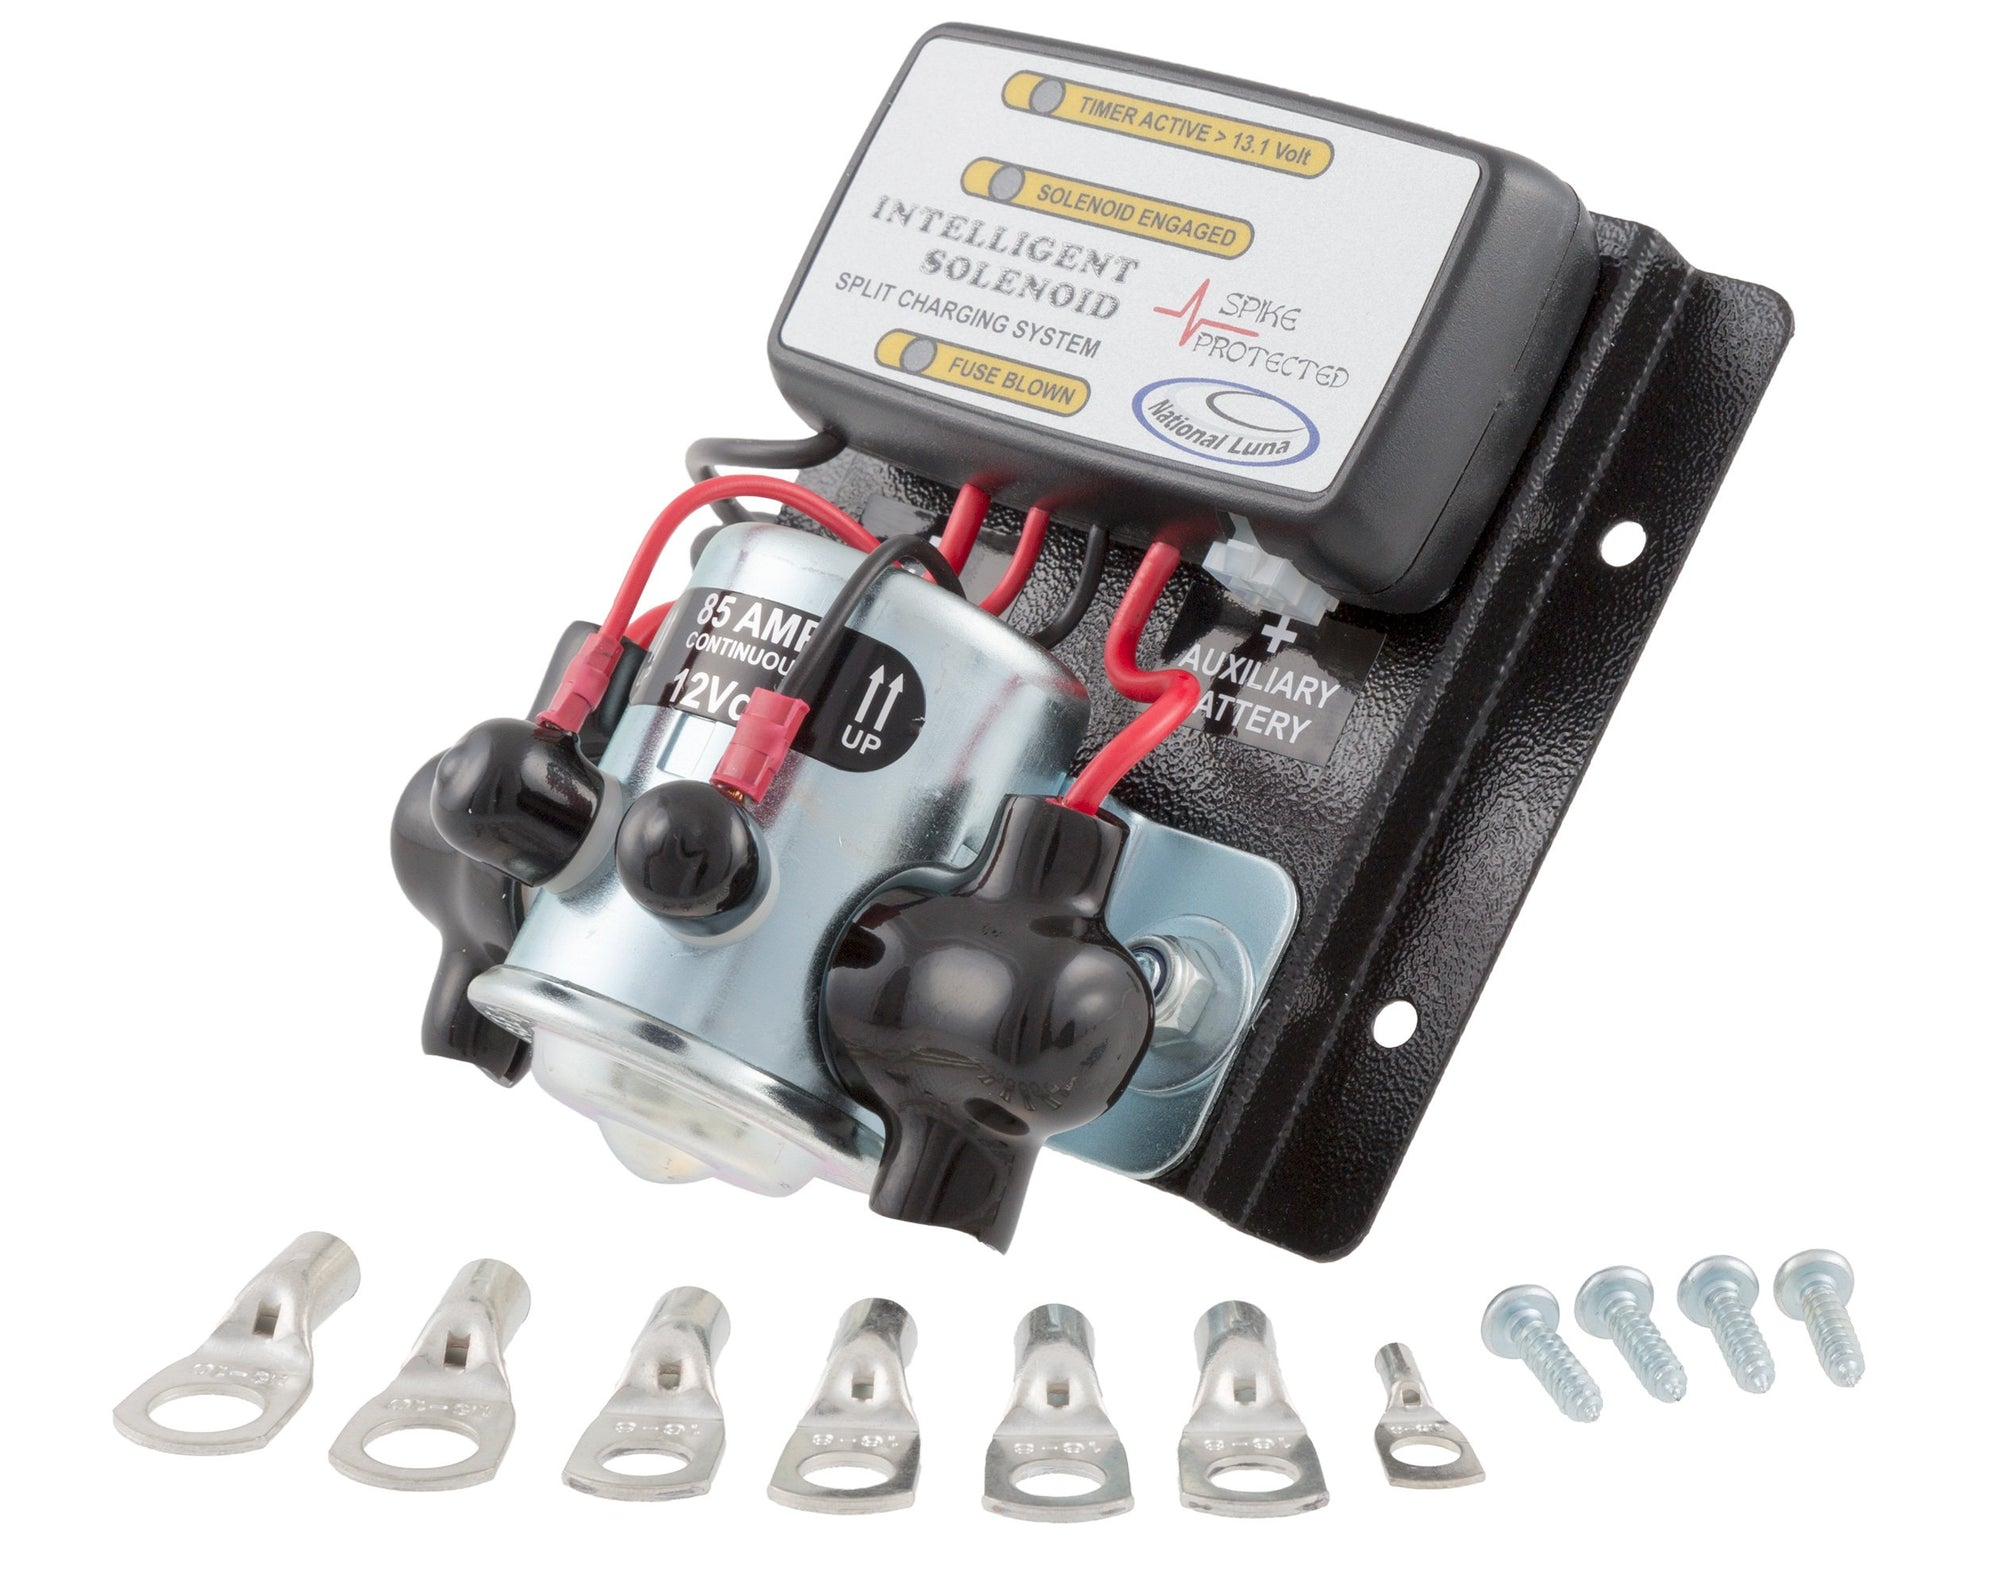 National Luna Intelligent Solenoid